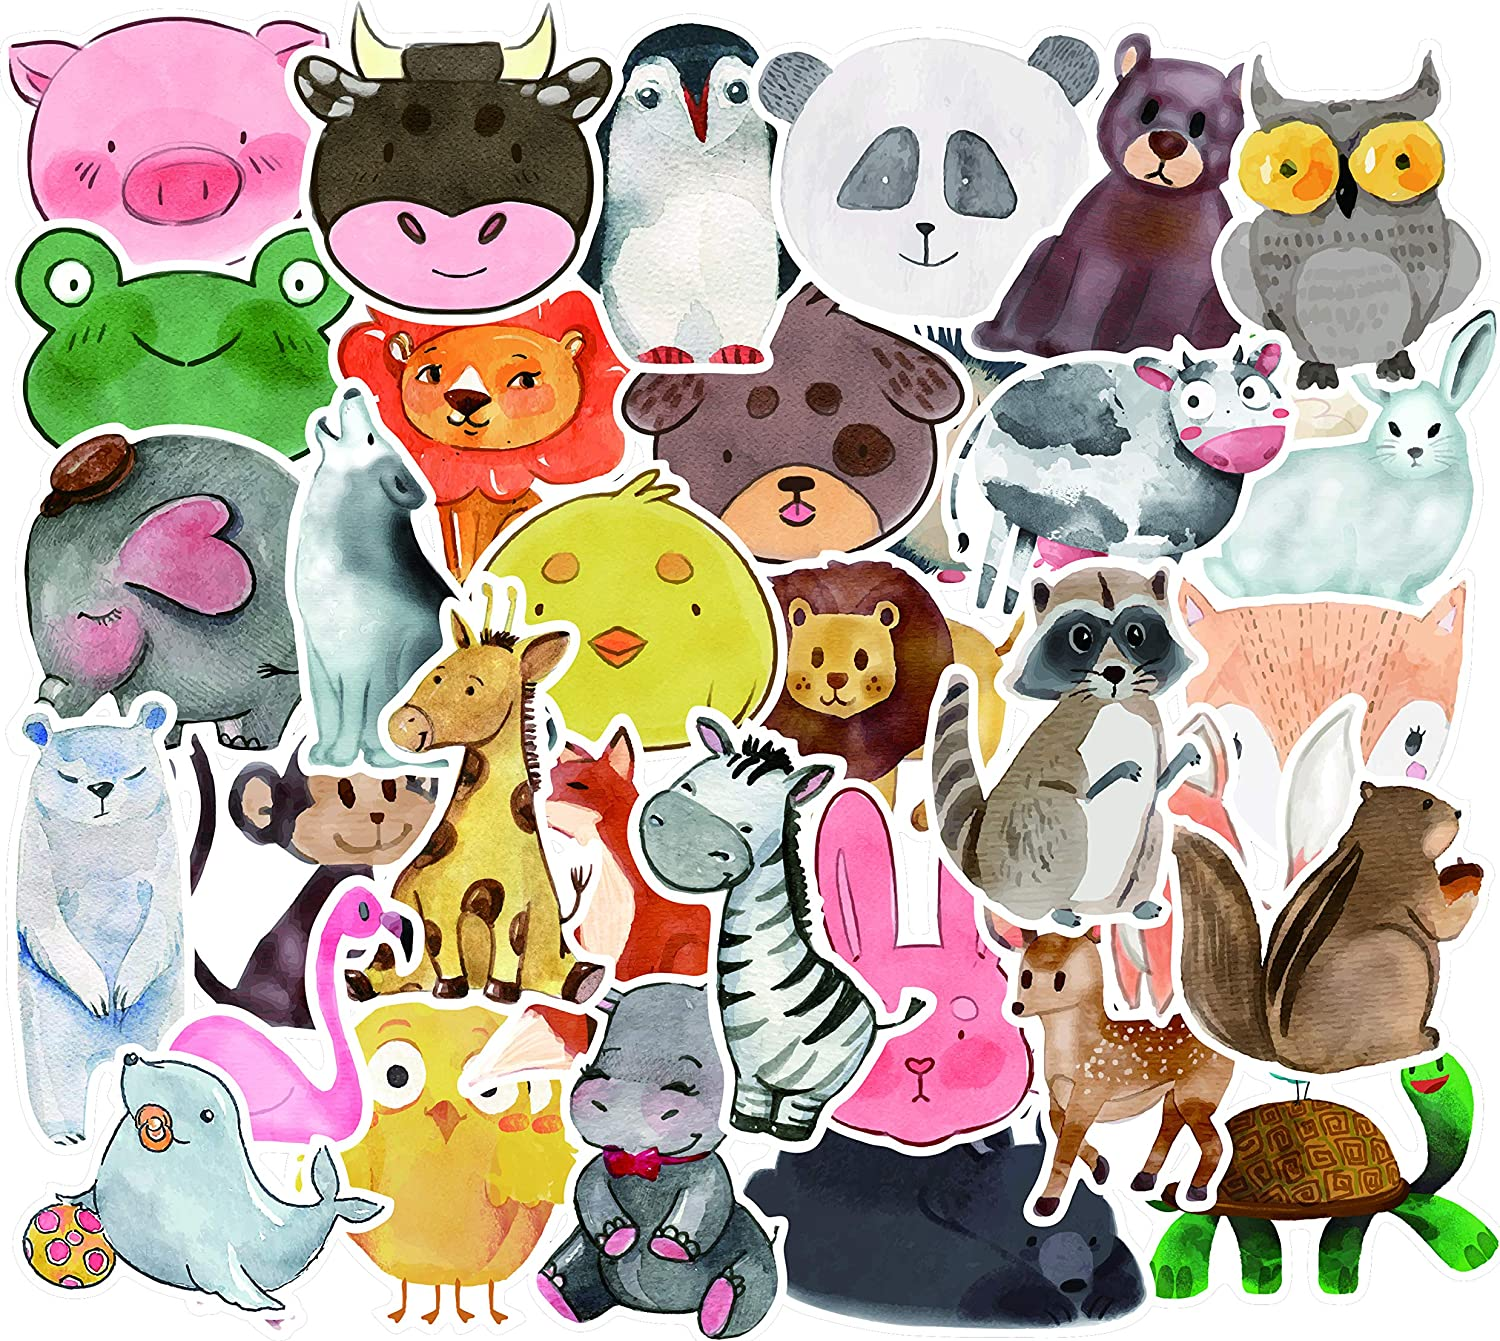 Honch Cute Cartoon Animal Stickers Lovely Stickers Pack 50 Pcs Suitcase Stickers Vinyl Decals for Laptop Bumper Helmet Ipad Car Luggage Water Bottle